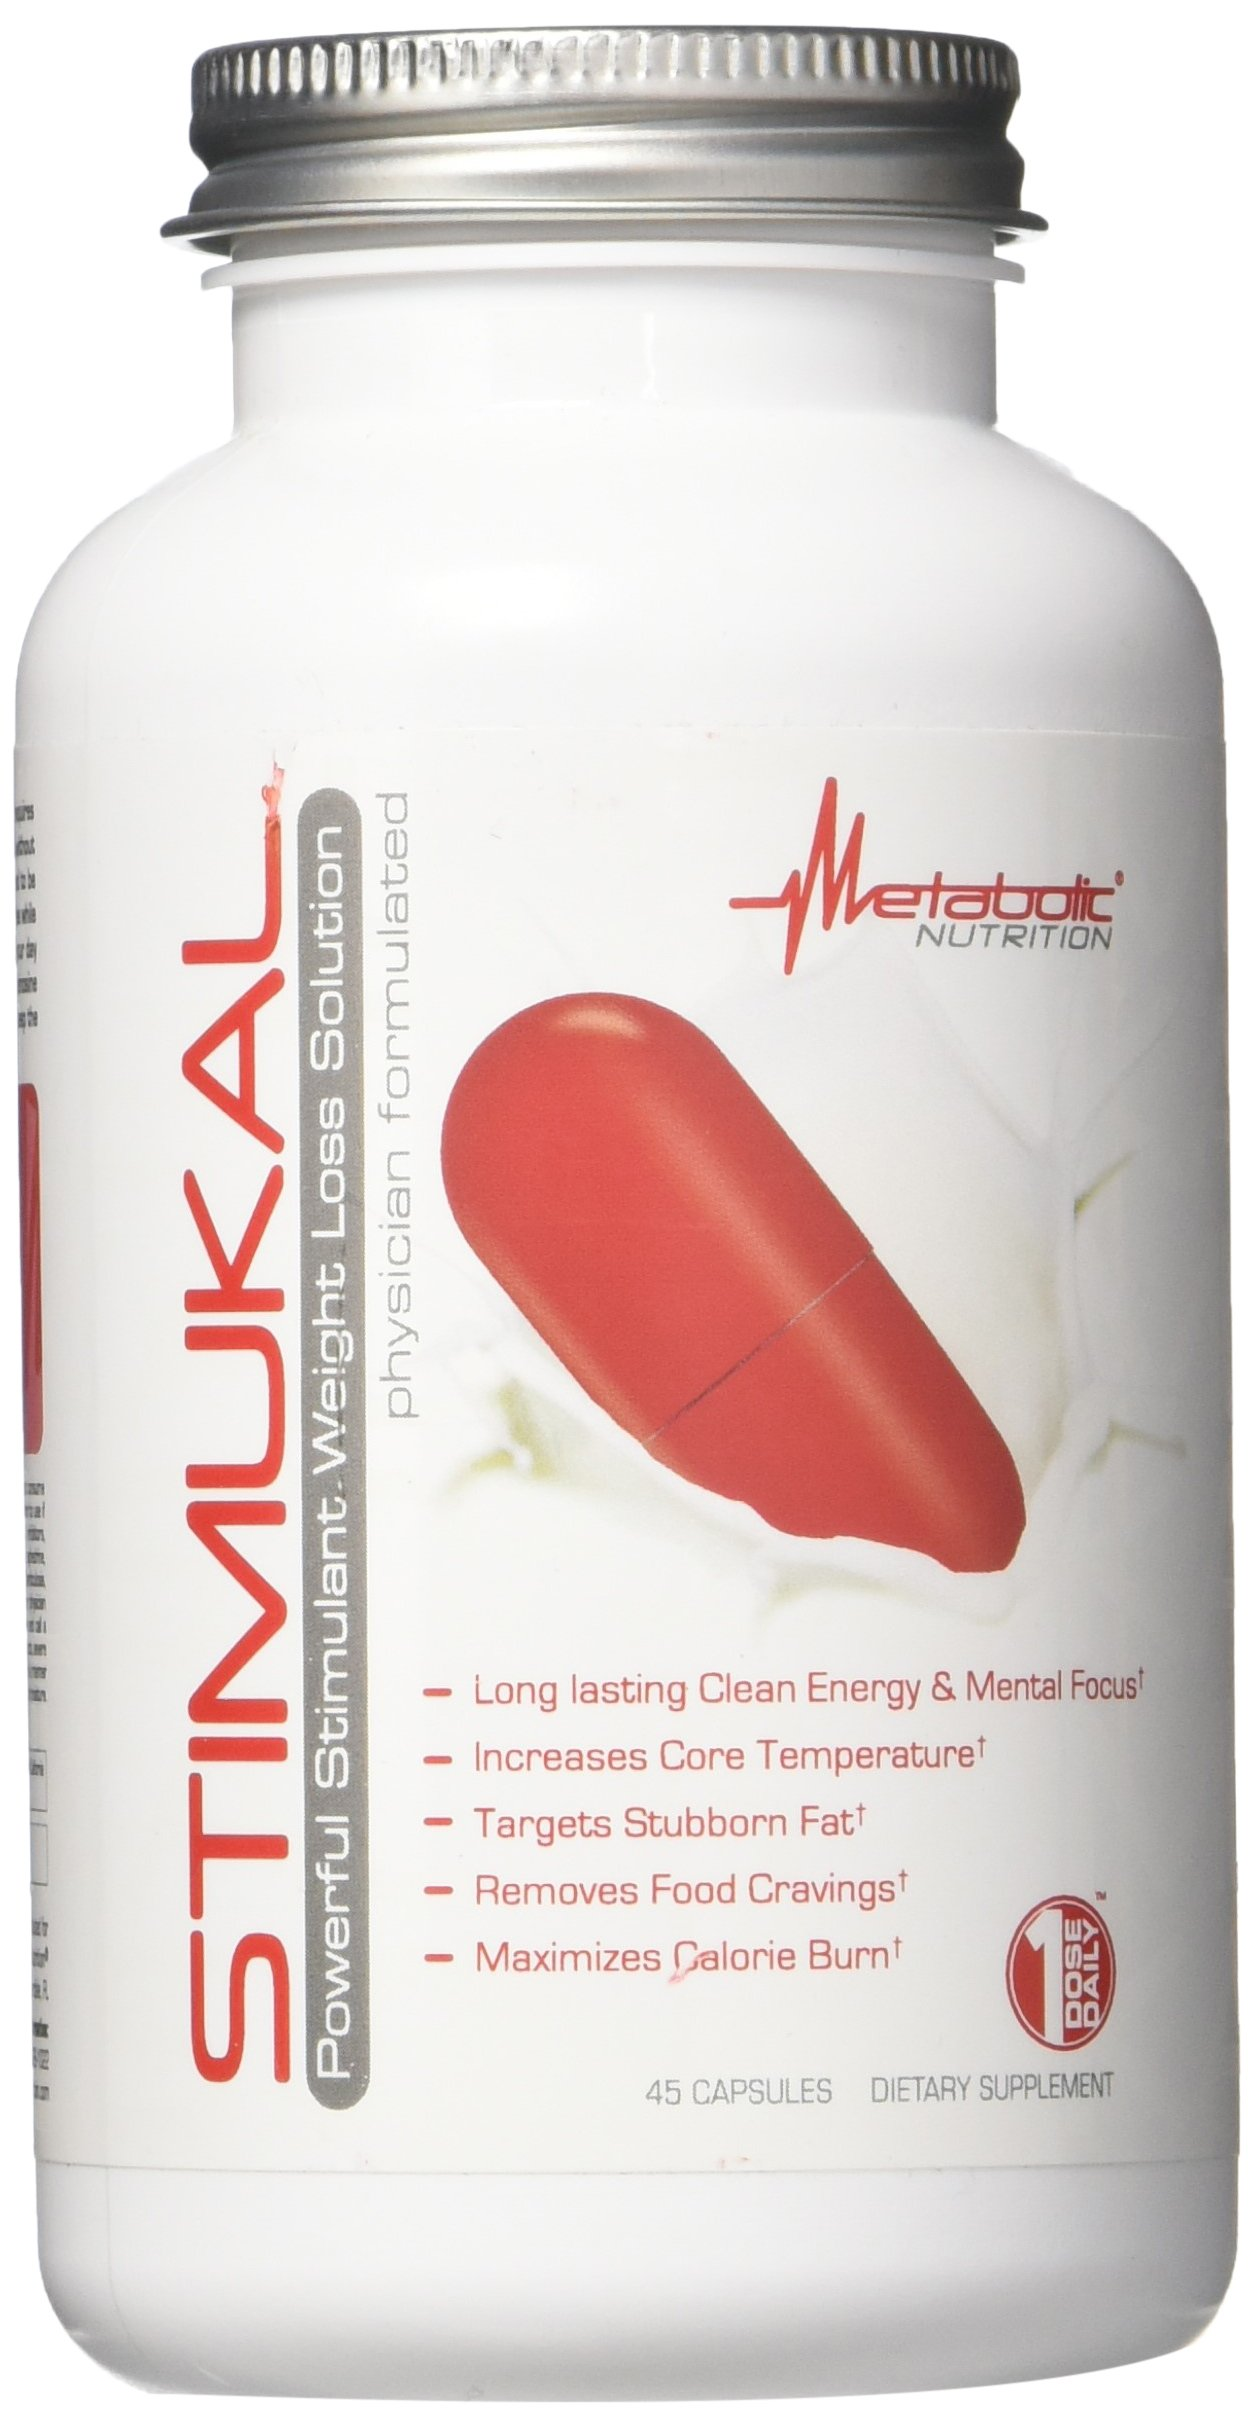 Metabolic Nutrition Stimukal Weight Loss Supplement, 45 Count